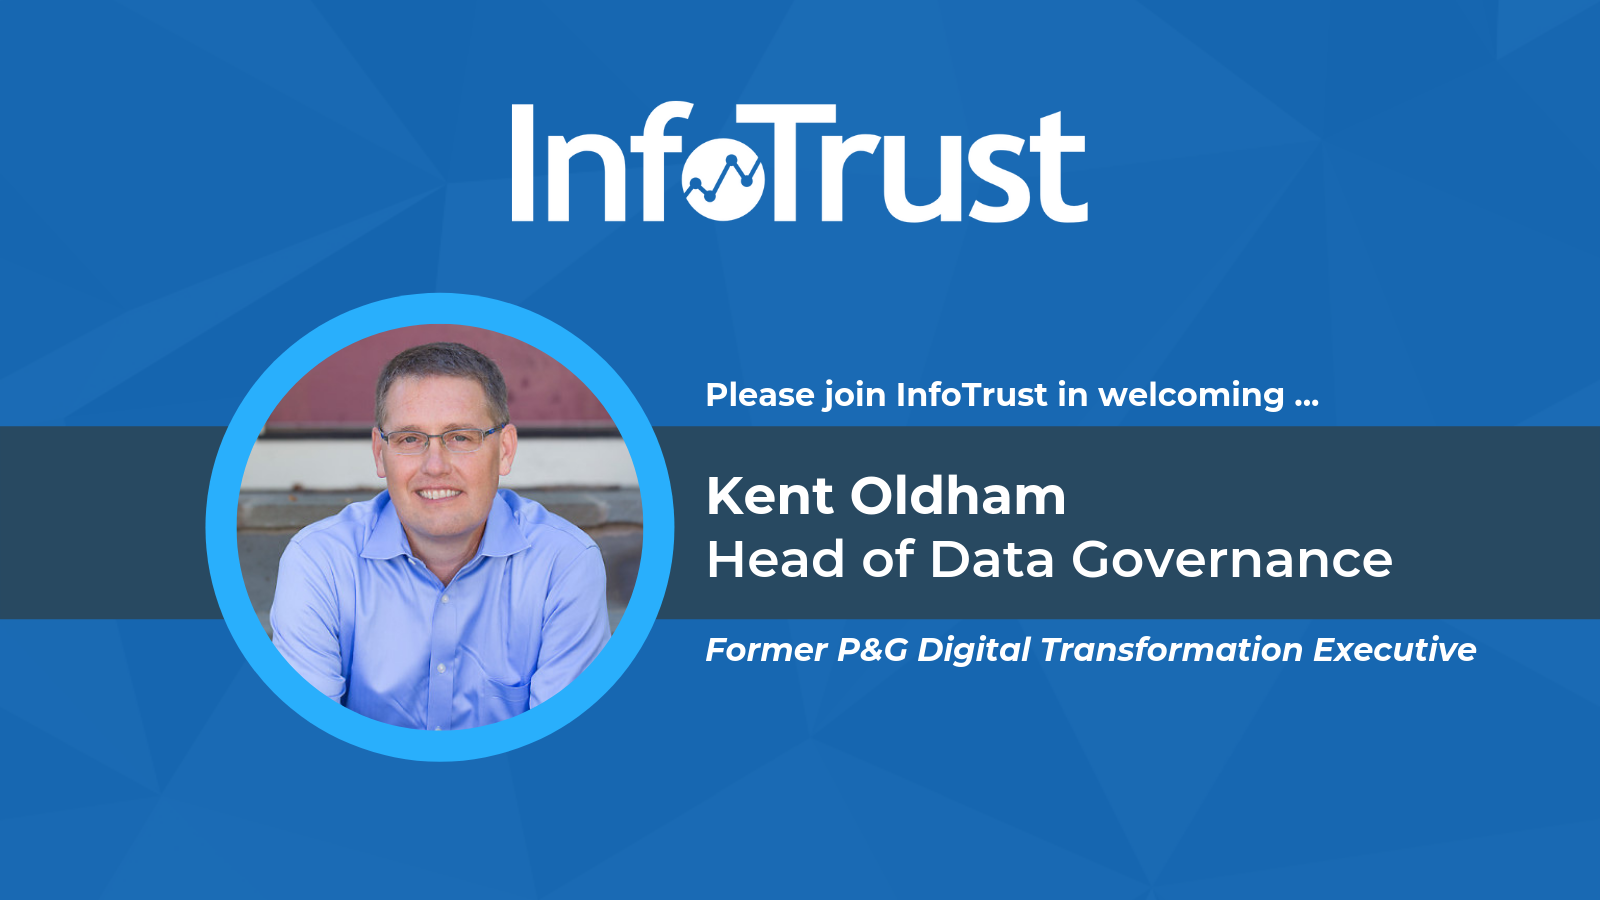 Former P&G Digital Transformation Executive Joins InfoTrust as Head of Data Governance